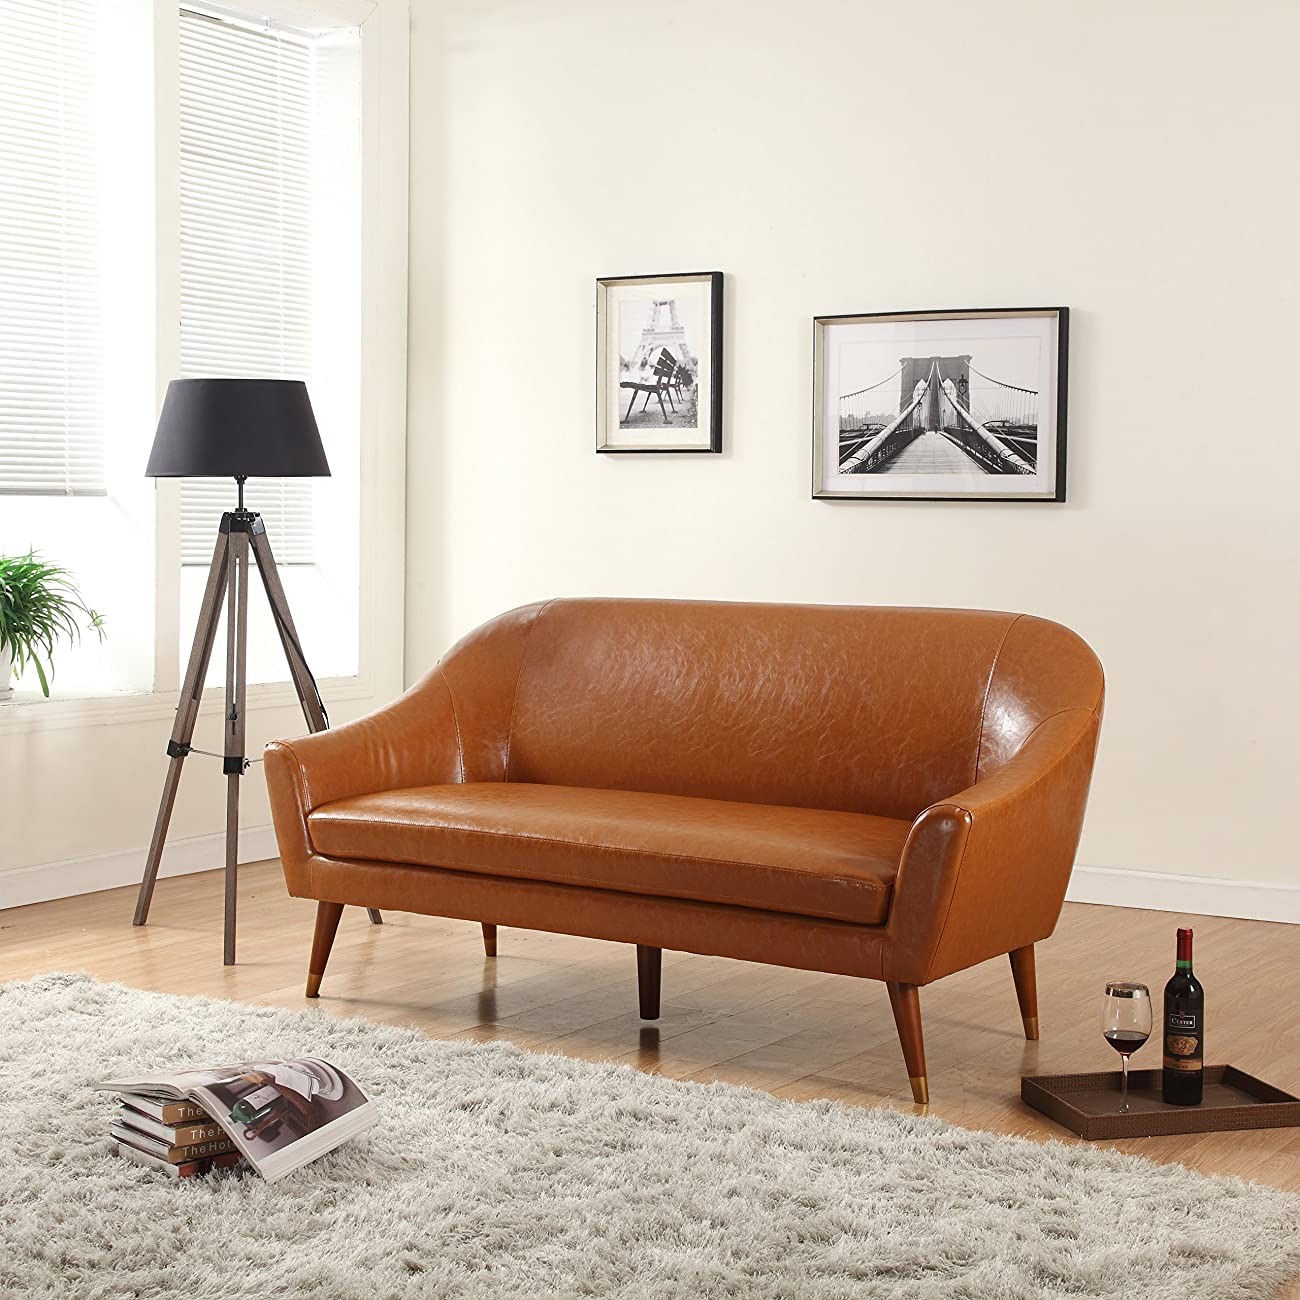 Divano Roma Furniture - Mid Century Modern Sofa - Bonded Leather 0